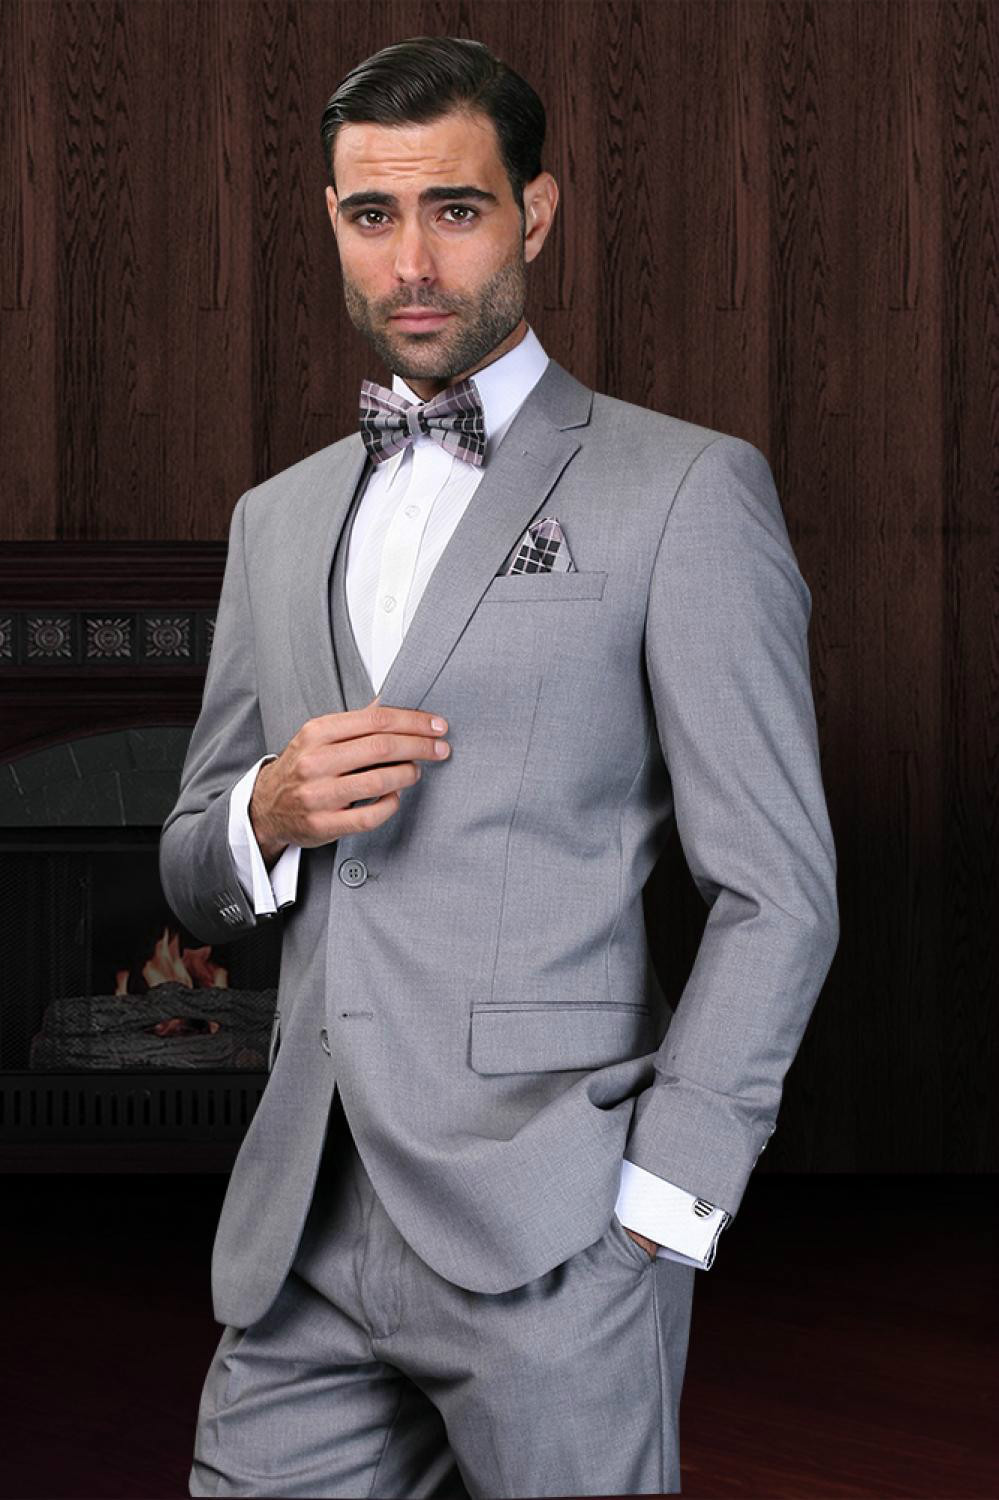 2016-Italian-light-grey-man-suit-jacket-formal-suit-wedding-dress-is-the-most-suitable-for